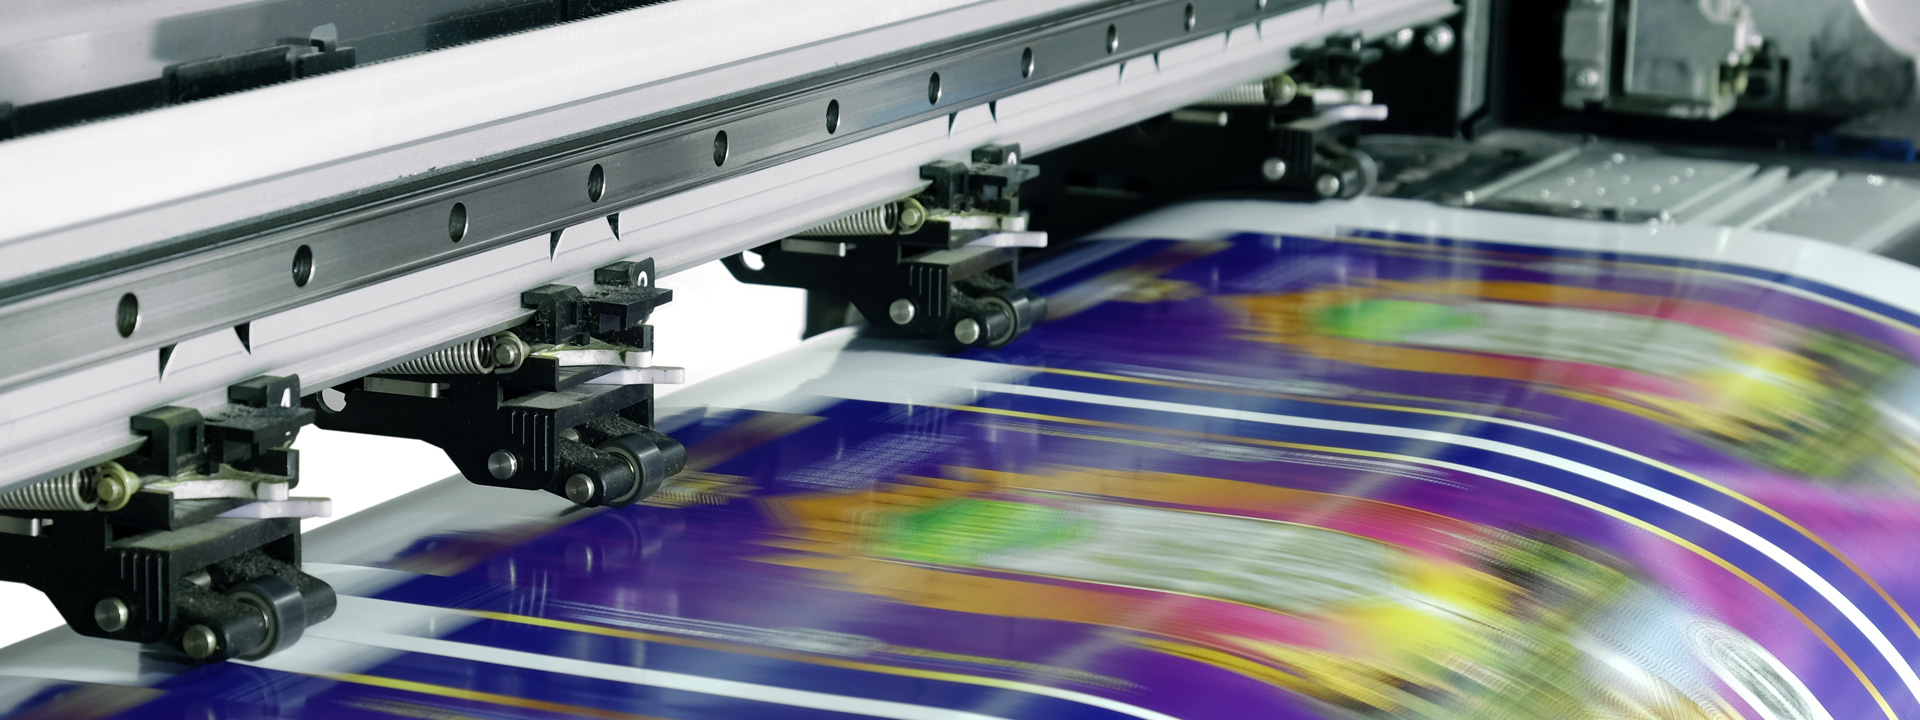 What's In Store for Printers in 2017?